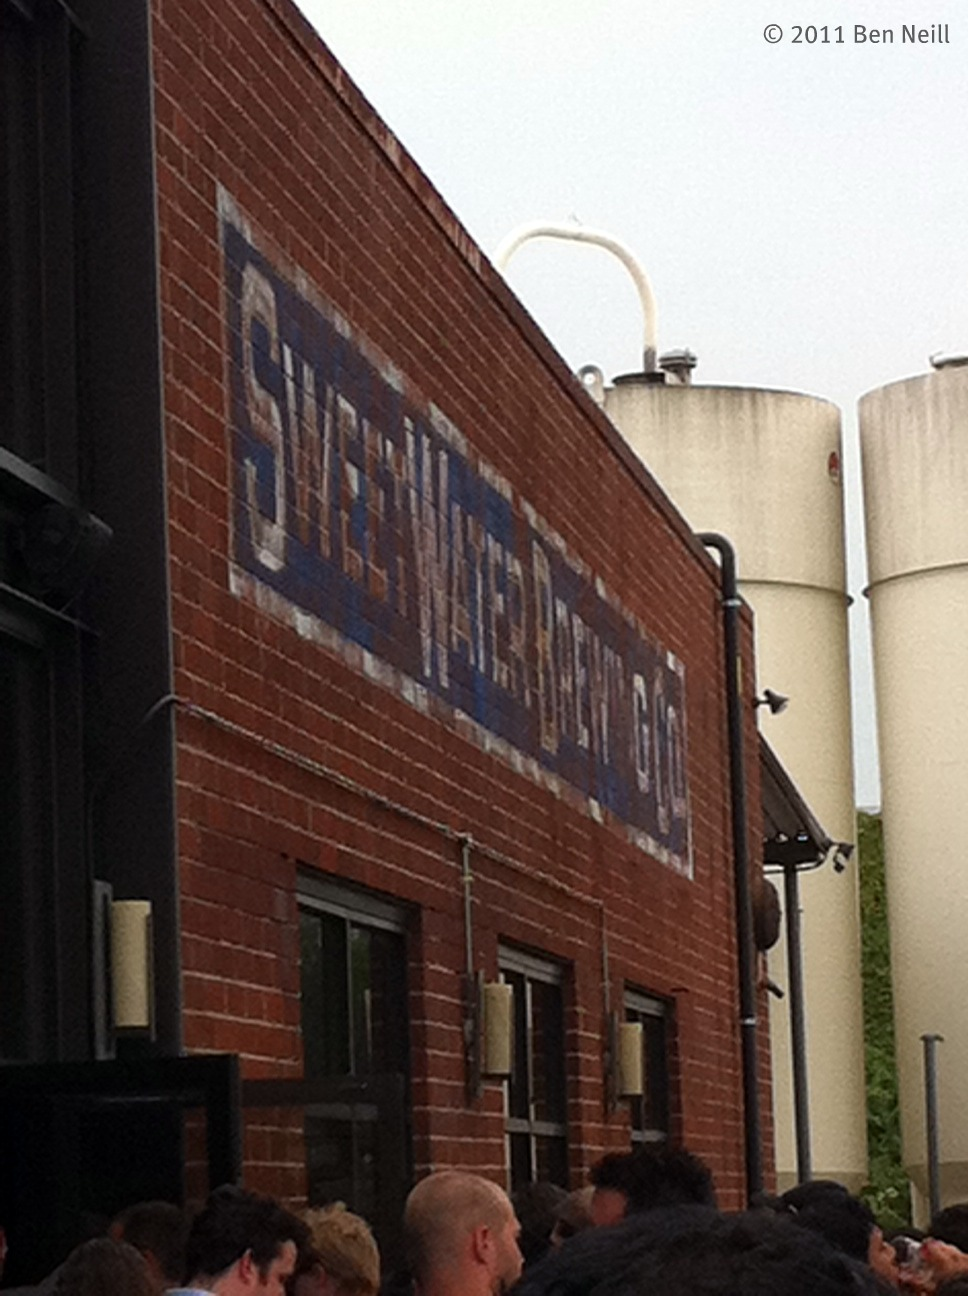 sweetwater-ipa-day-brick-sign-ottley-drive-atlanta-ga